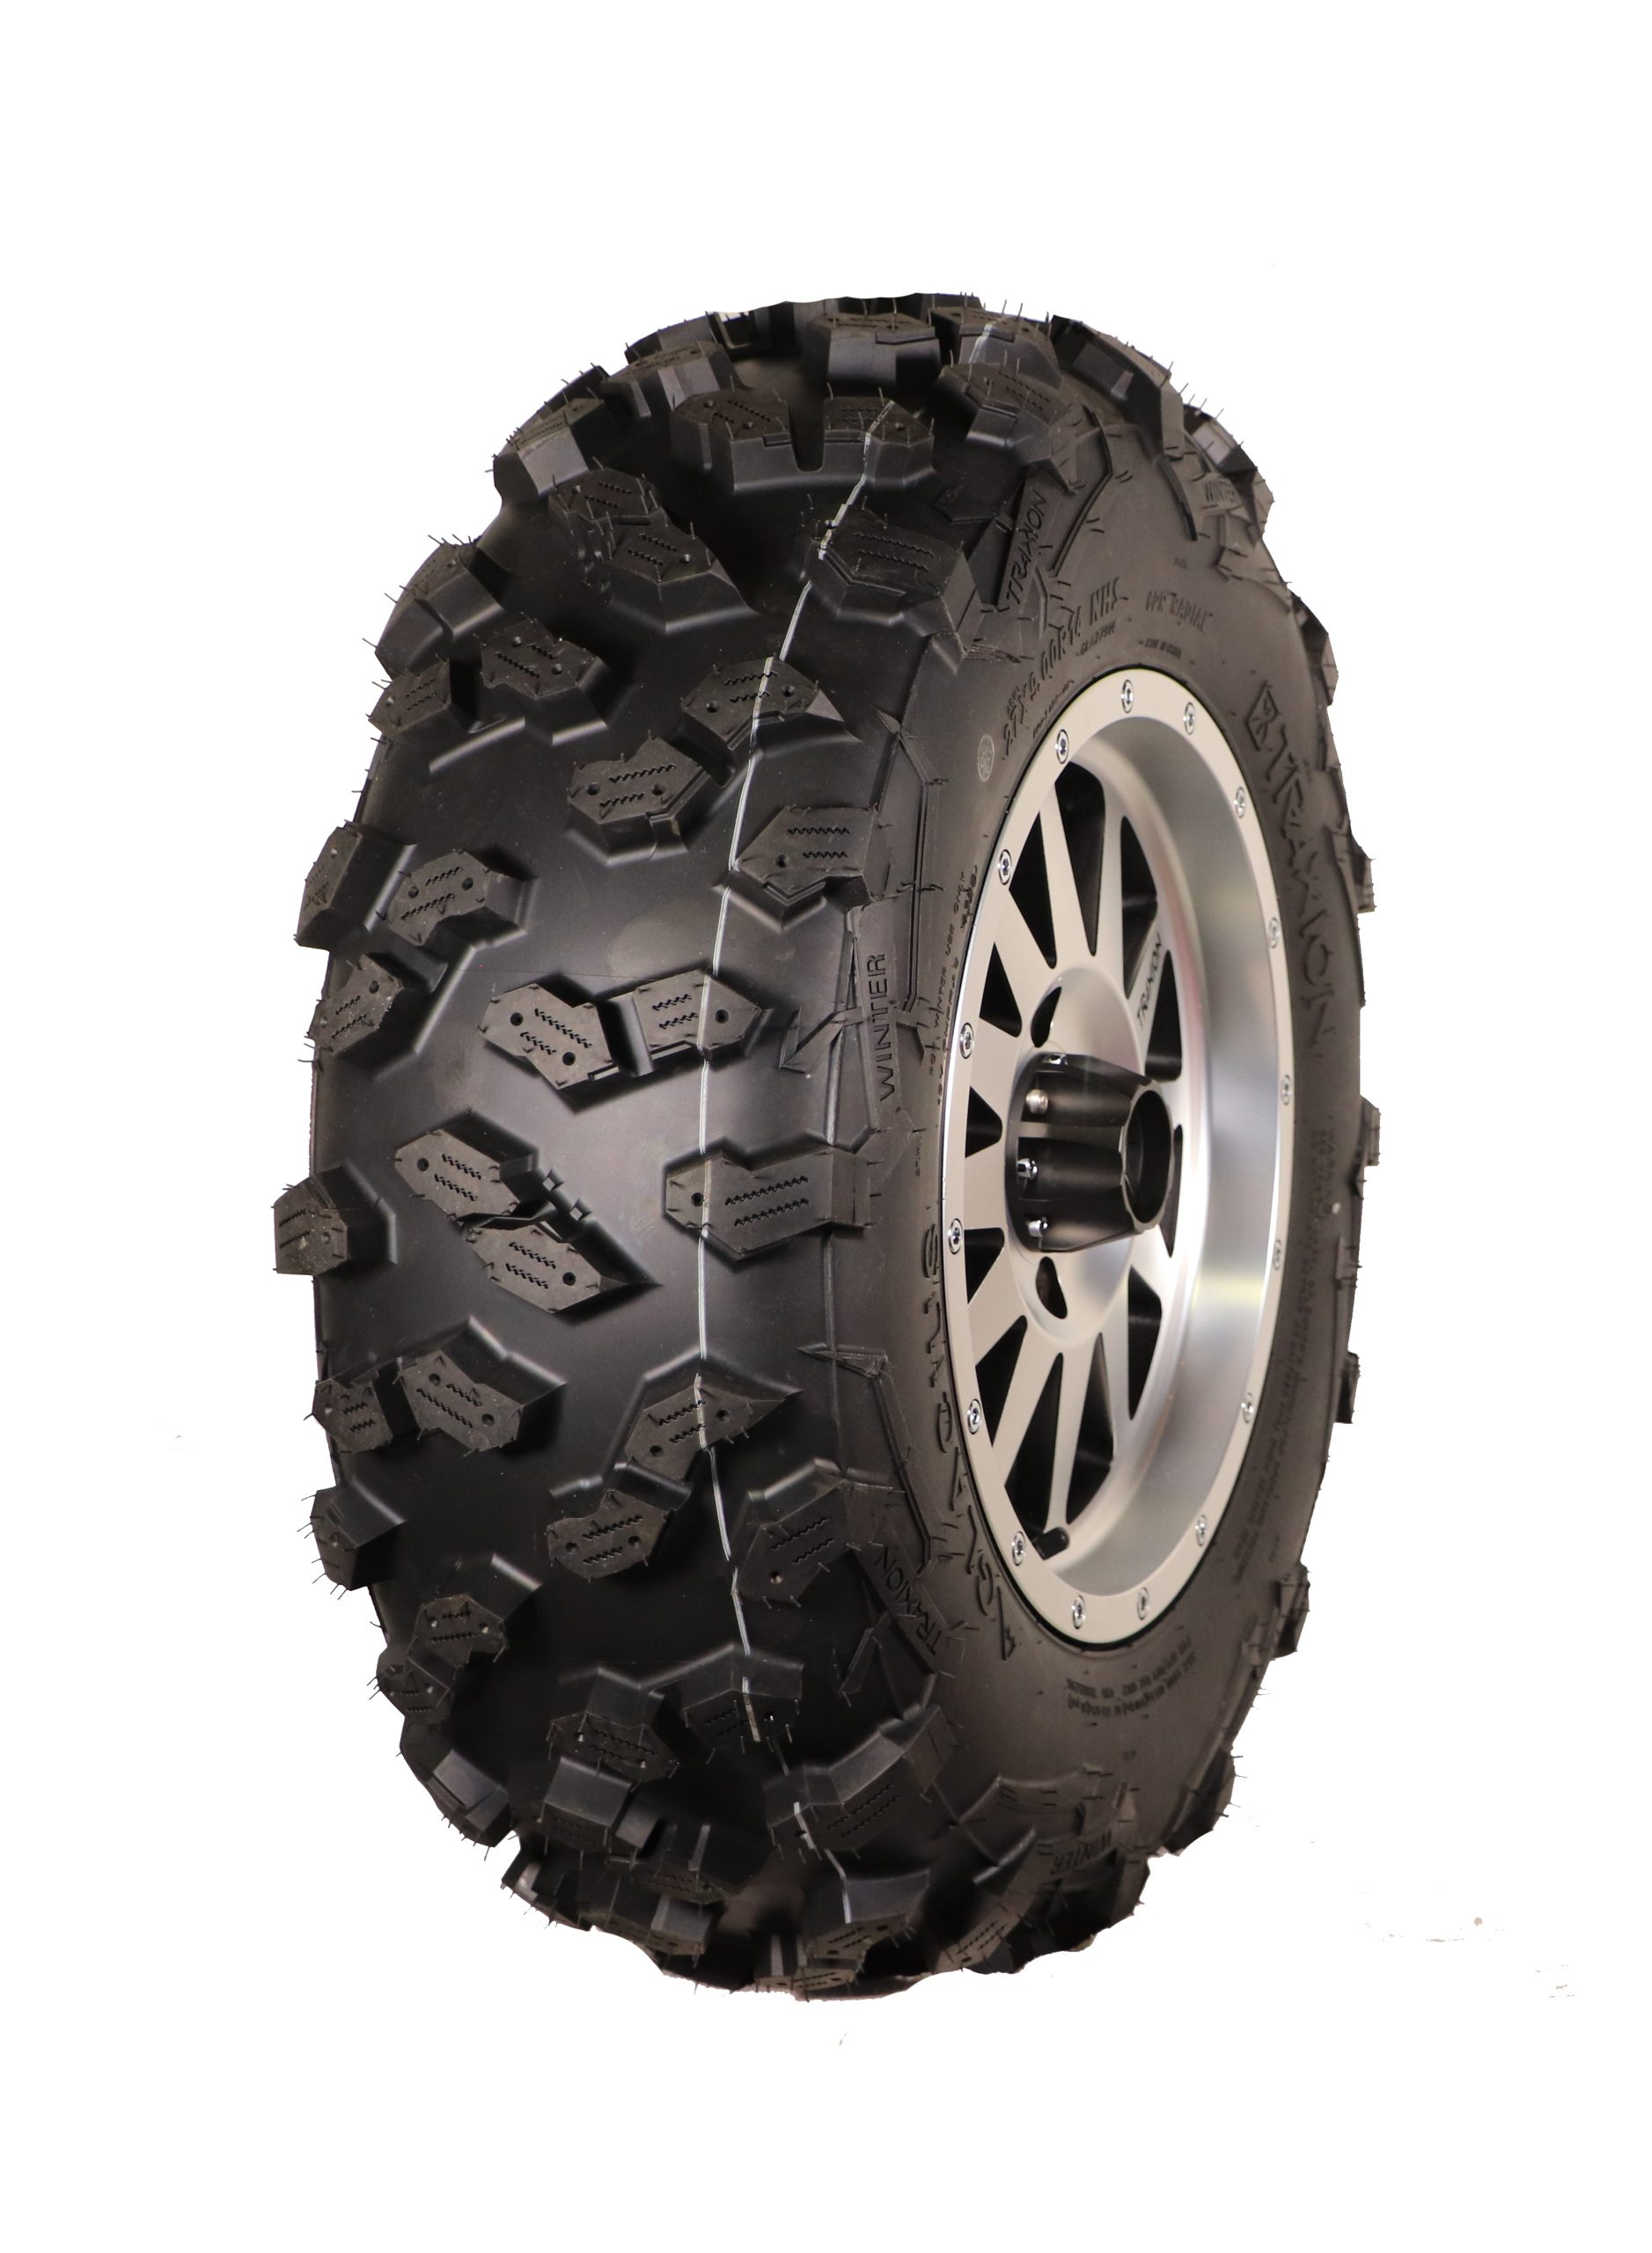 The right tires for the winter quad : Glacius Traxion offroad